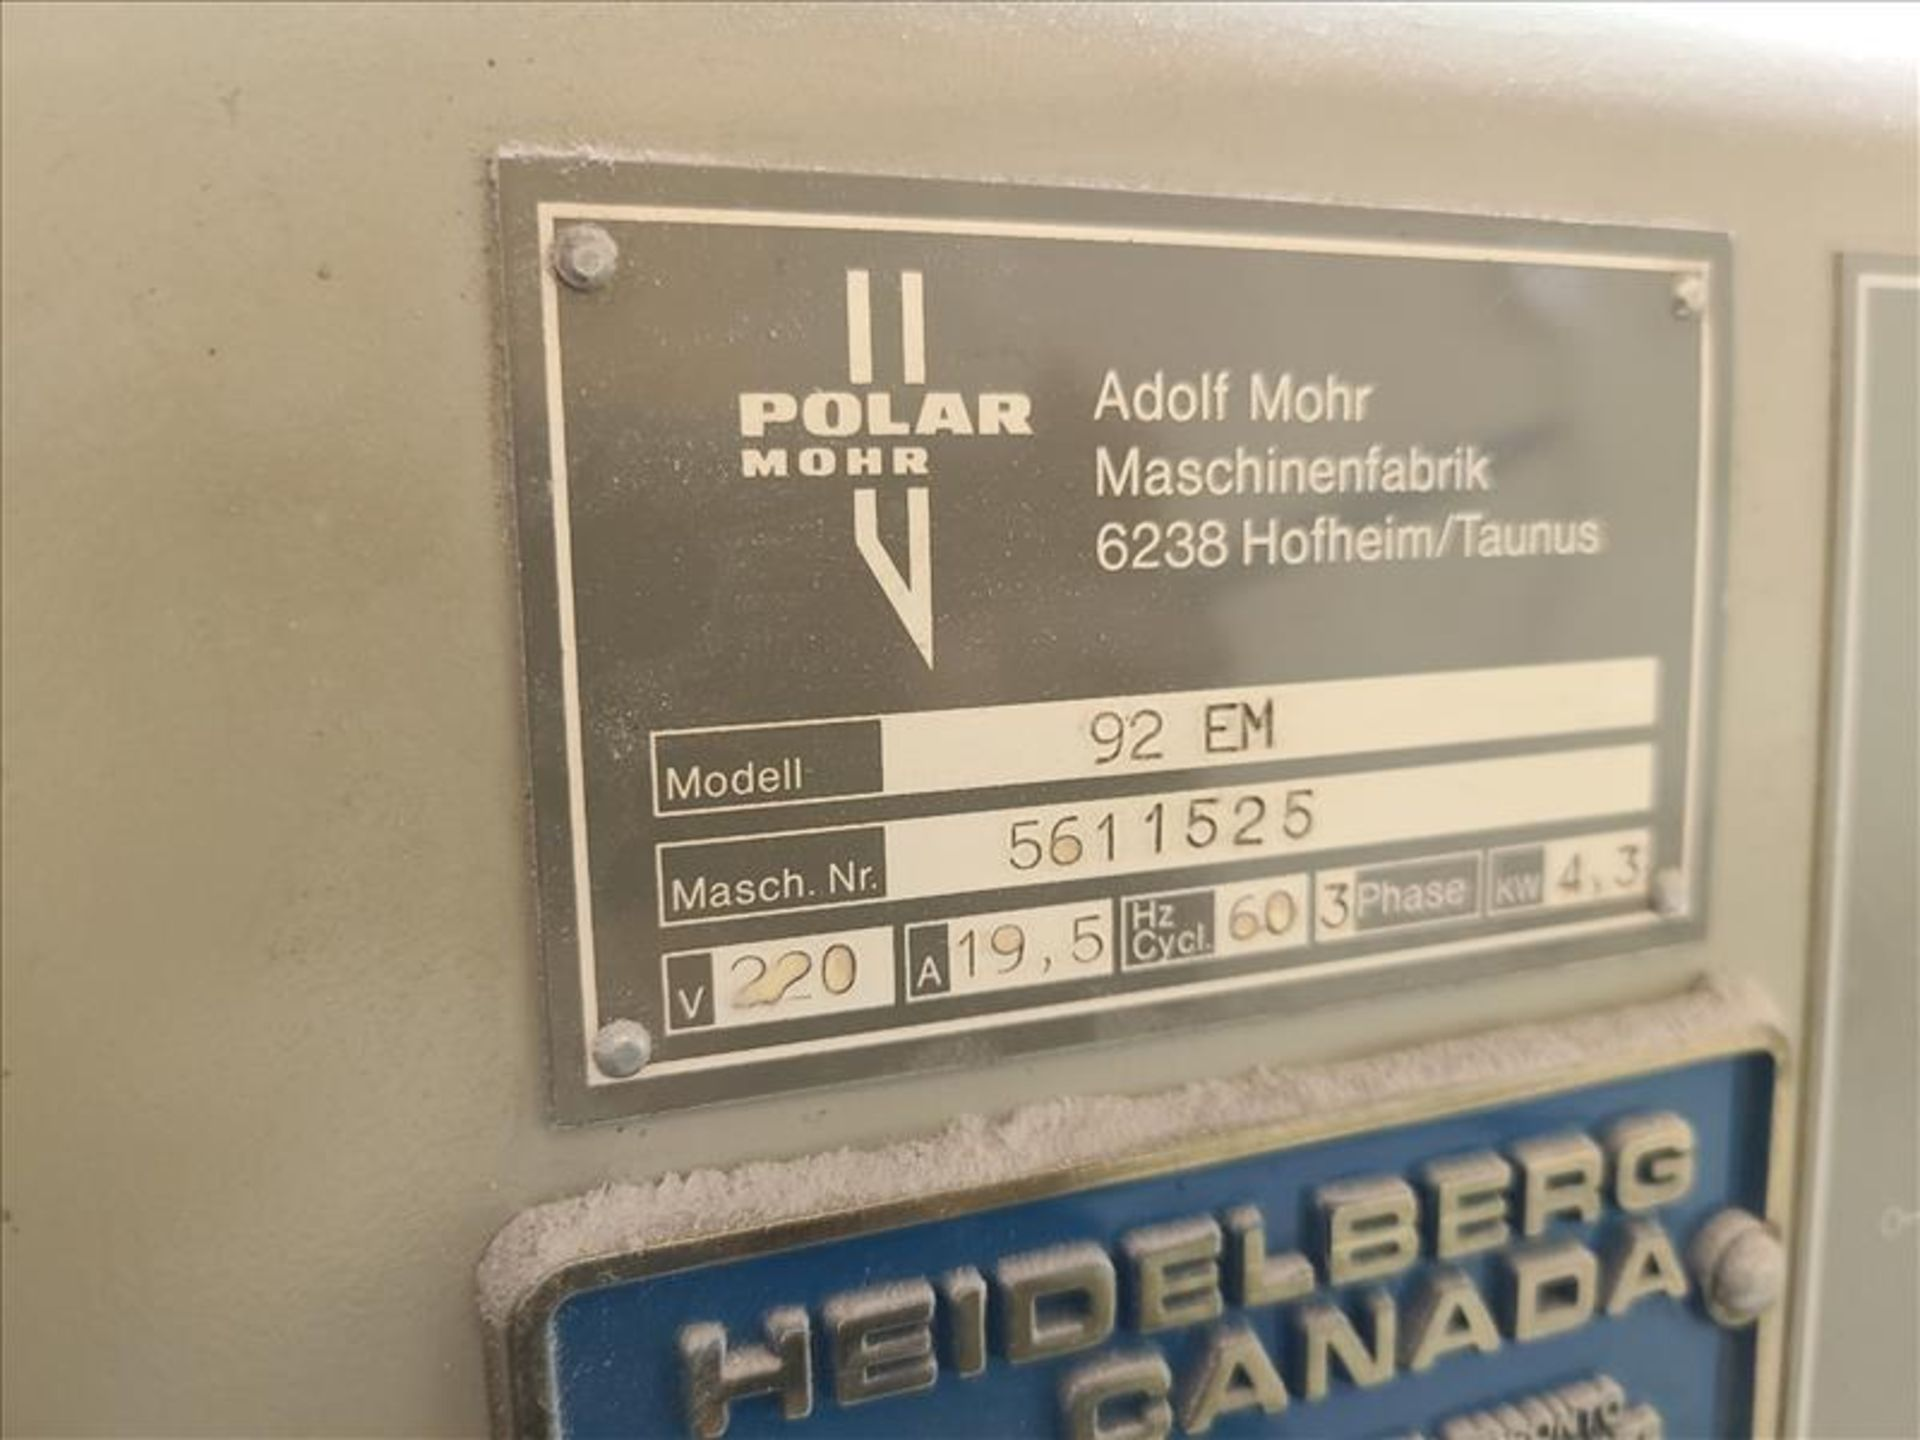 Polar Mohr Guillotine, model 92EM, S/N. 5611525, w/ 3' infeed, 220V, 19.5 amps, 3 Phase - Image 3 of 3